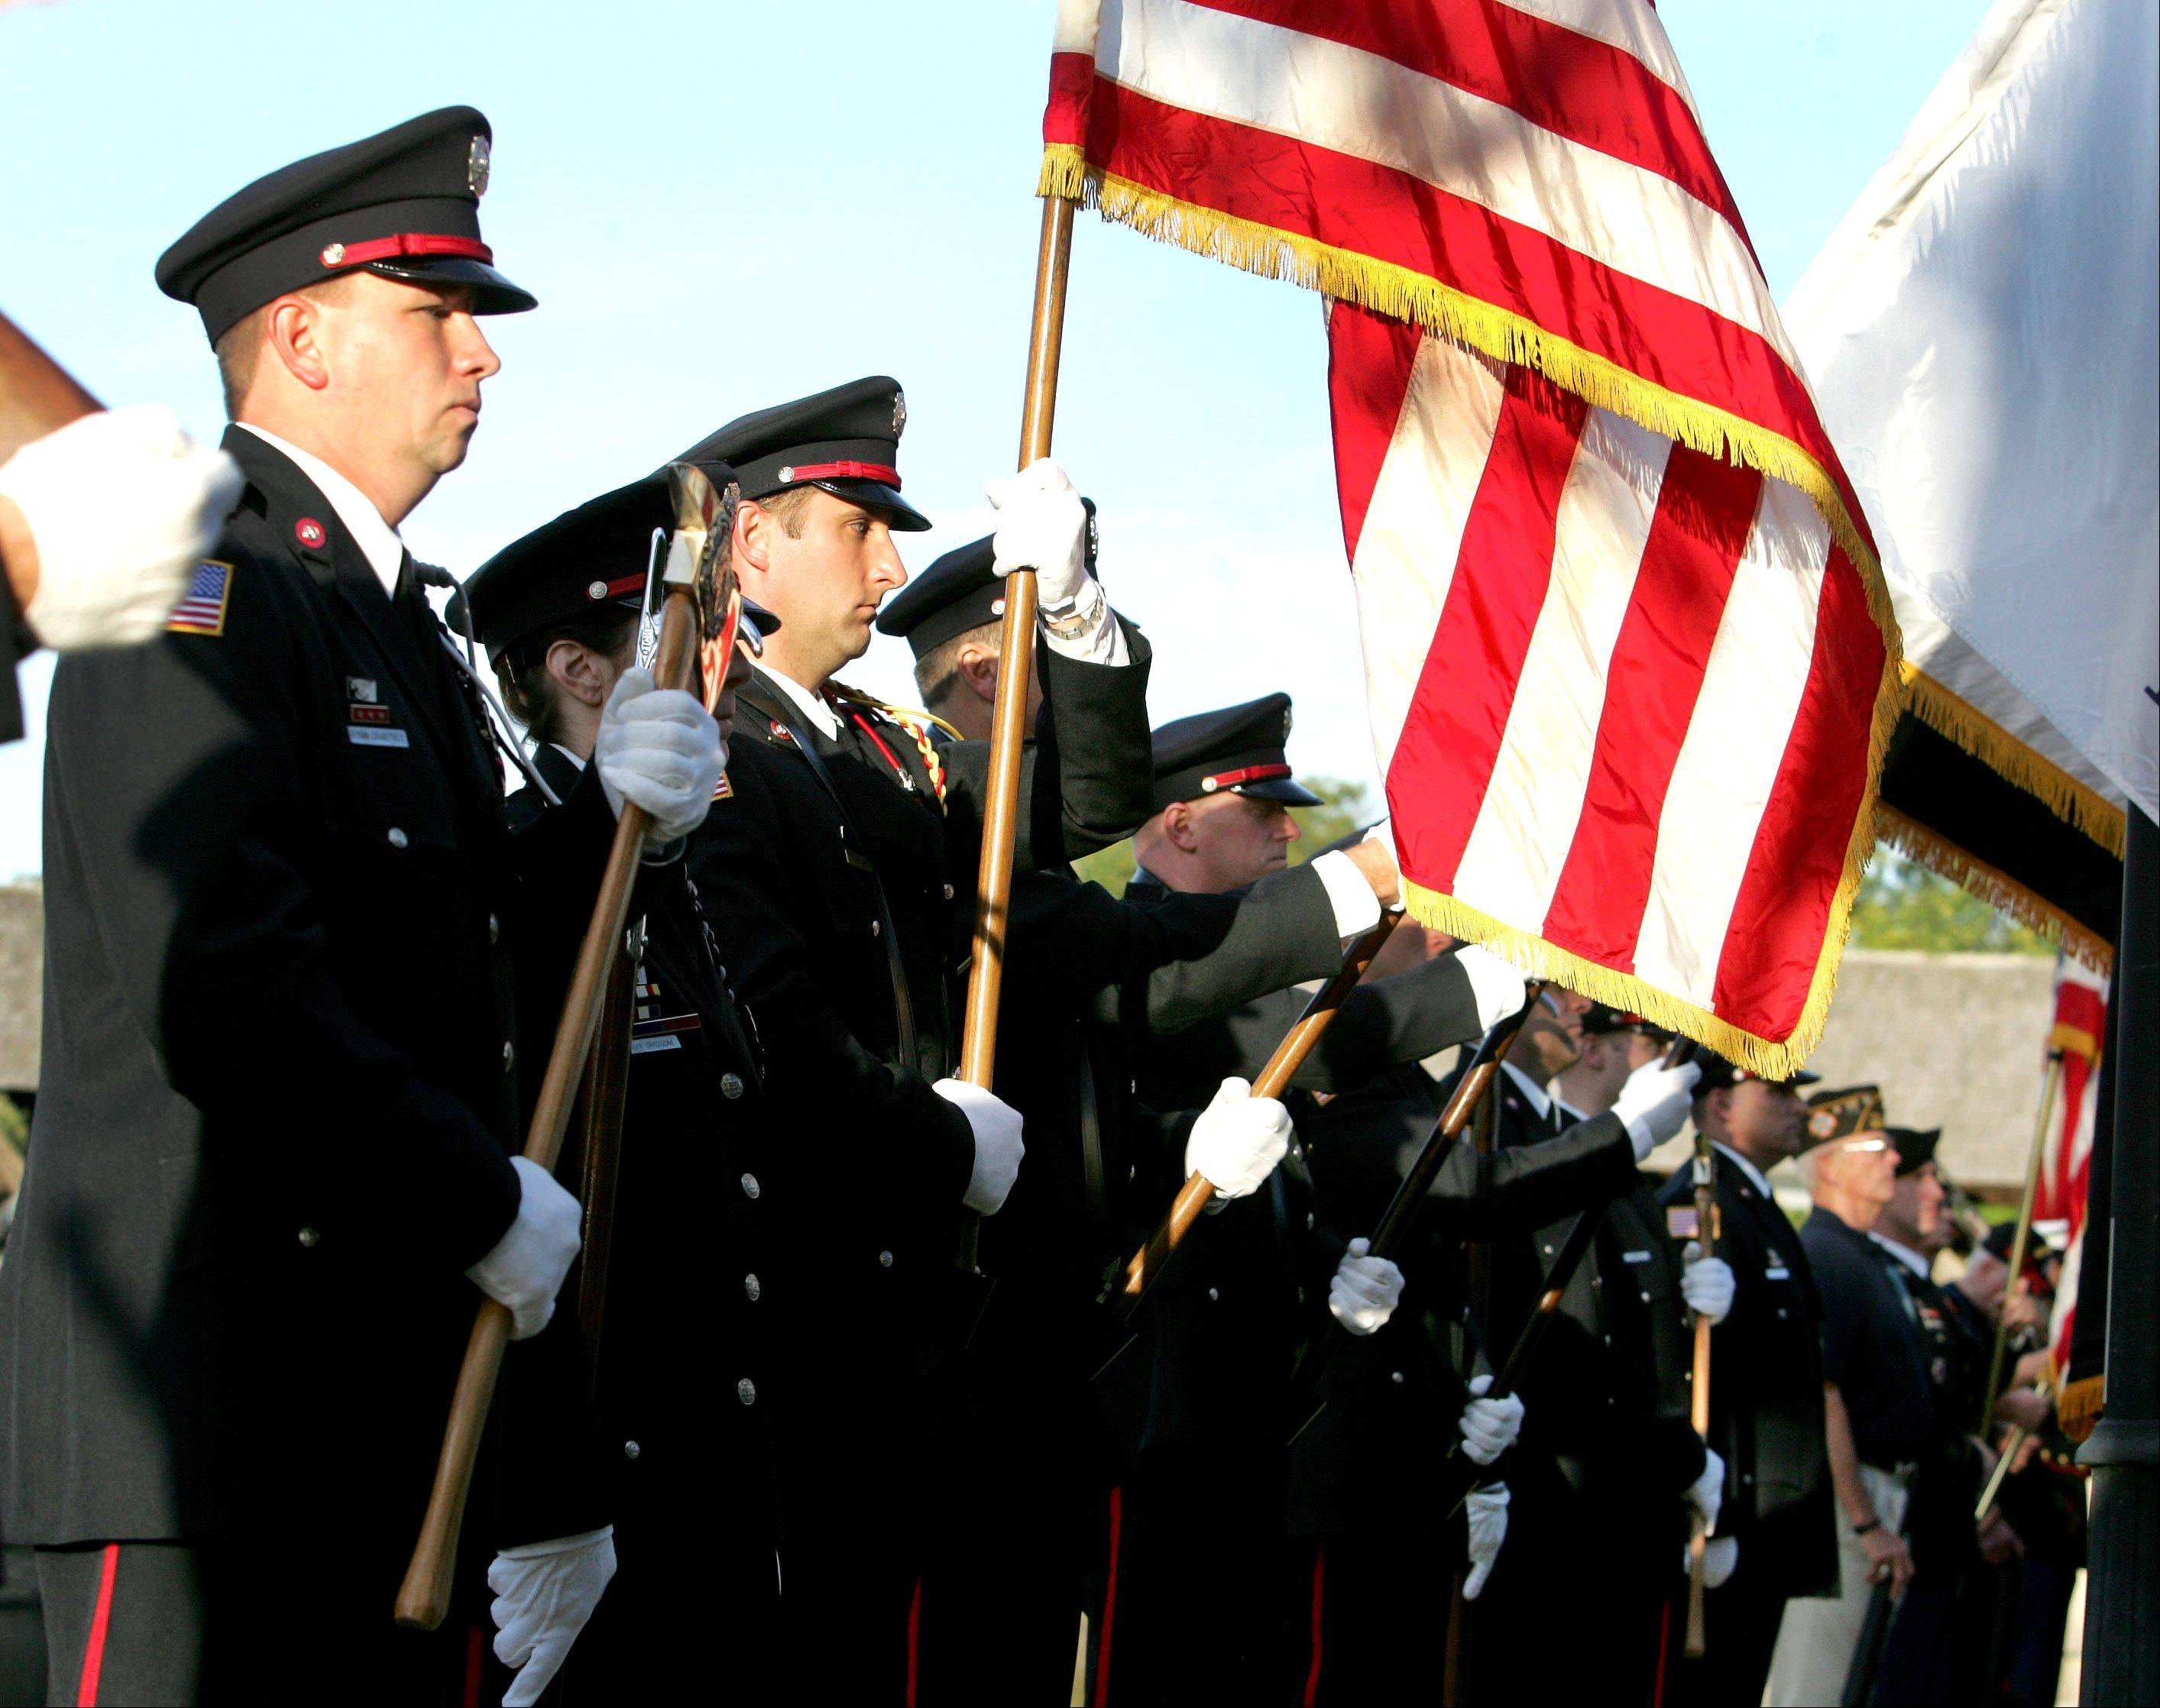 A combined color guard of the Naperville Fire and Police departments, American Legion Post 43 and the Veterans of Foreign Wars Post 3873, present colors for the annual September 11 remembrance at the Cmdr. Dan Shanower Memorial in Naperville on Tuesday.